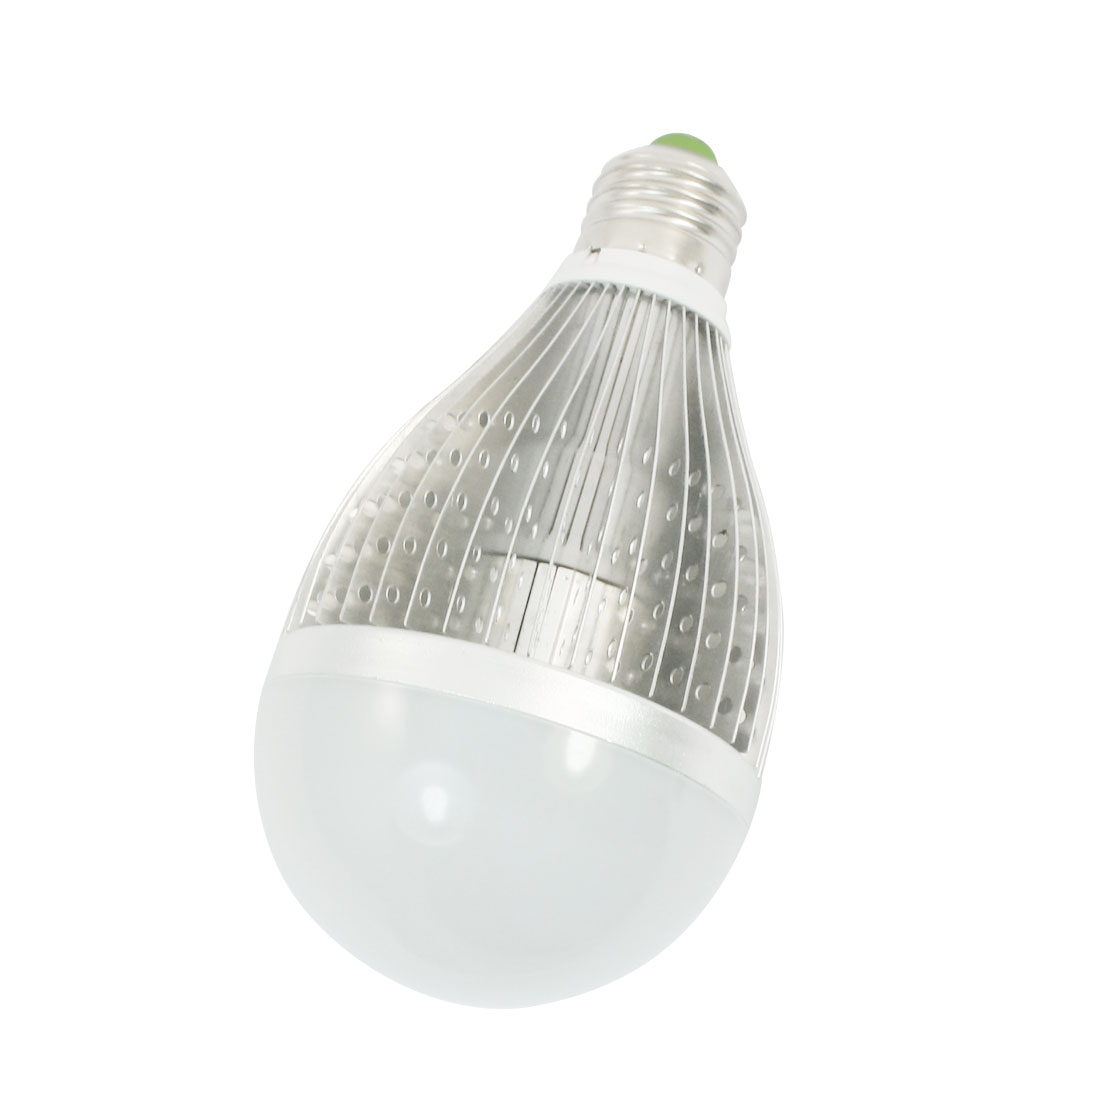 Household E27 Base 1000Lm 6000-6500K White 10W 10 x 1W LEDs SMD Globe Ball Light Lamp AC 85-265V